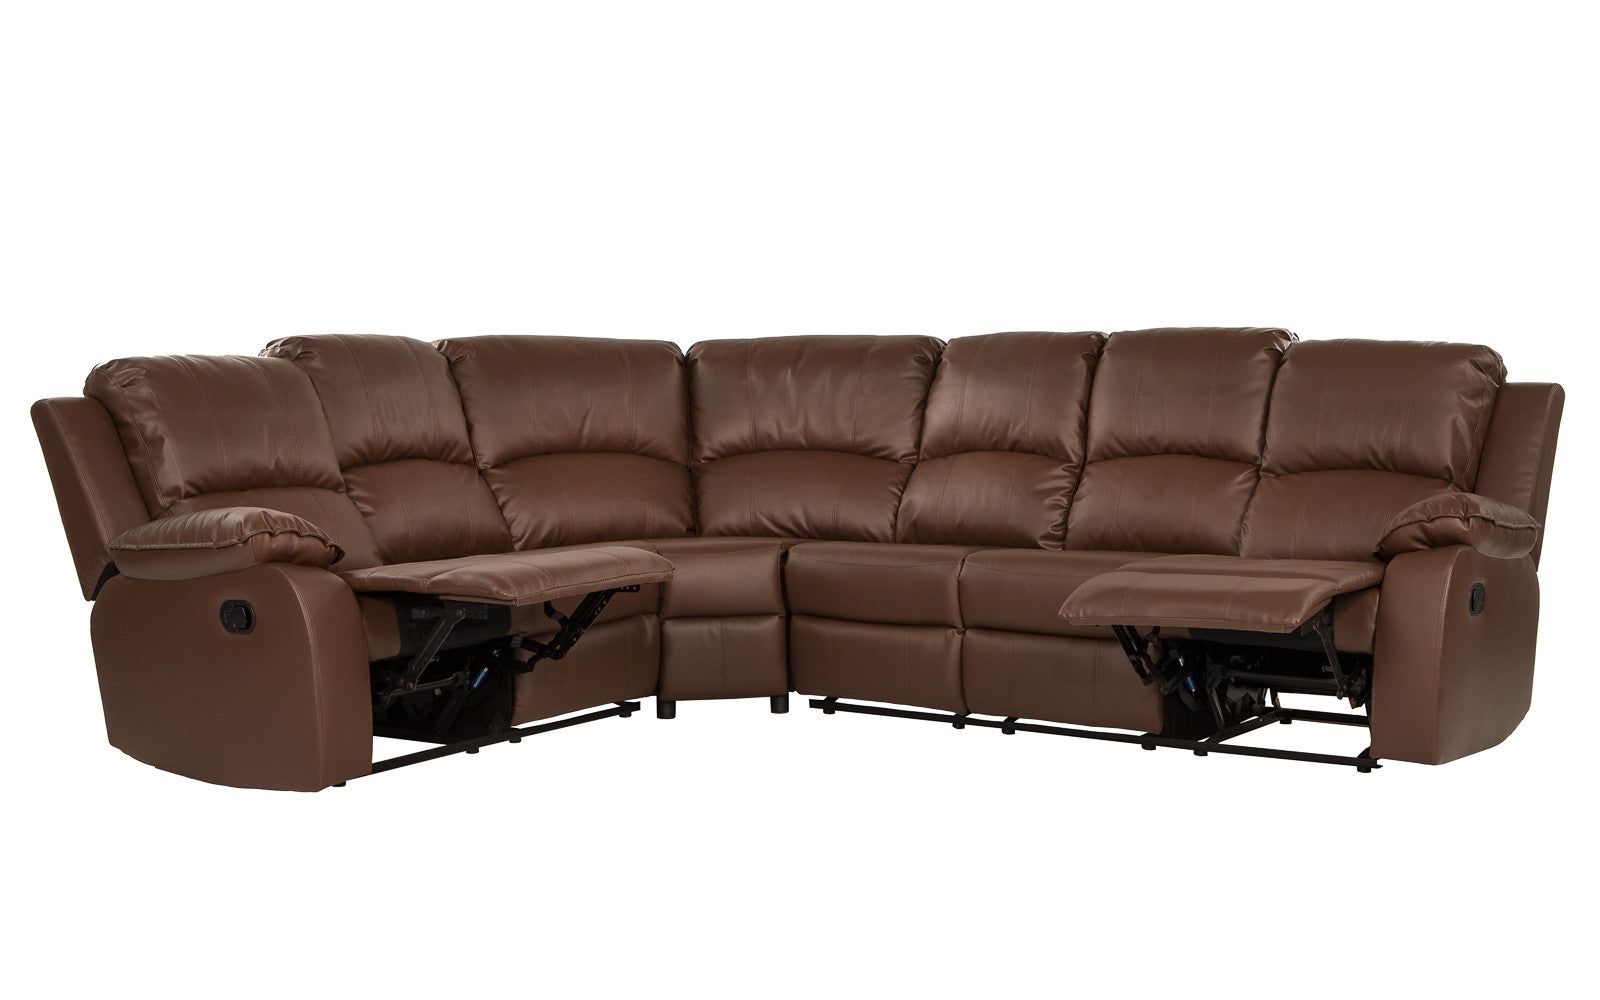 Bond Classic 6-Seat Leather Reclining Sectional Sofa